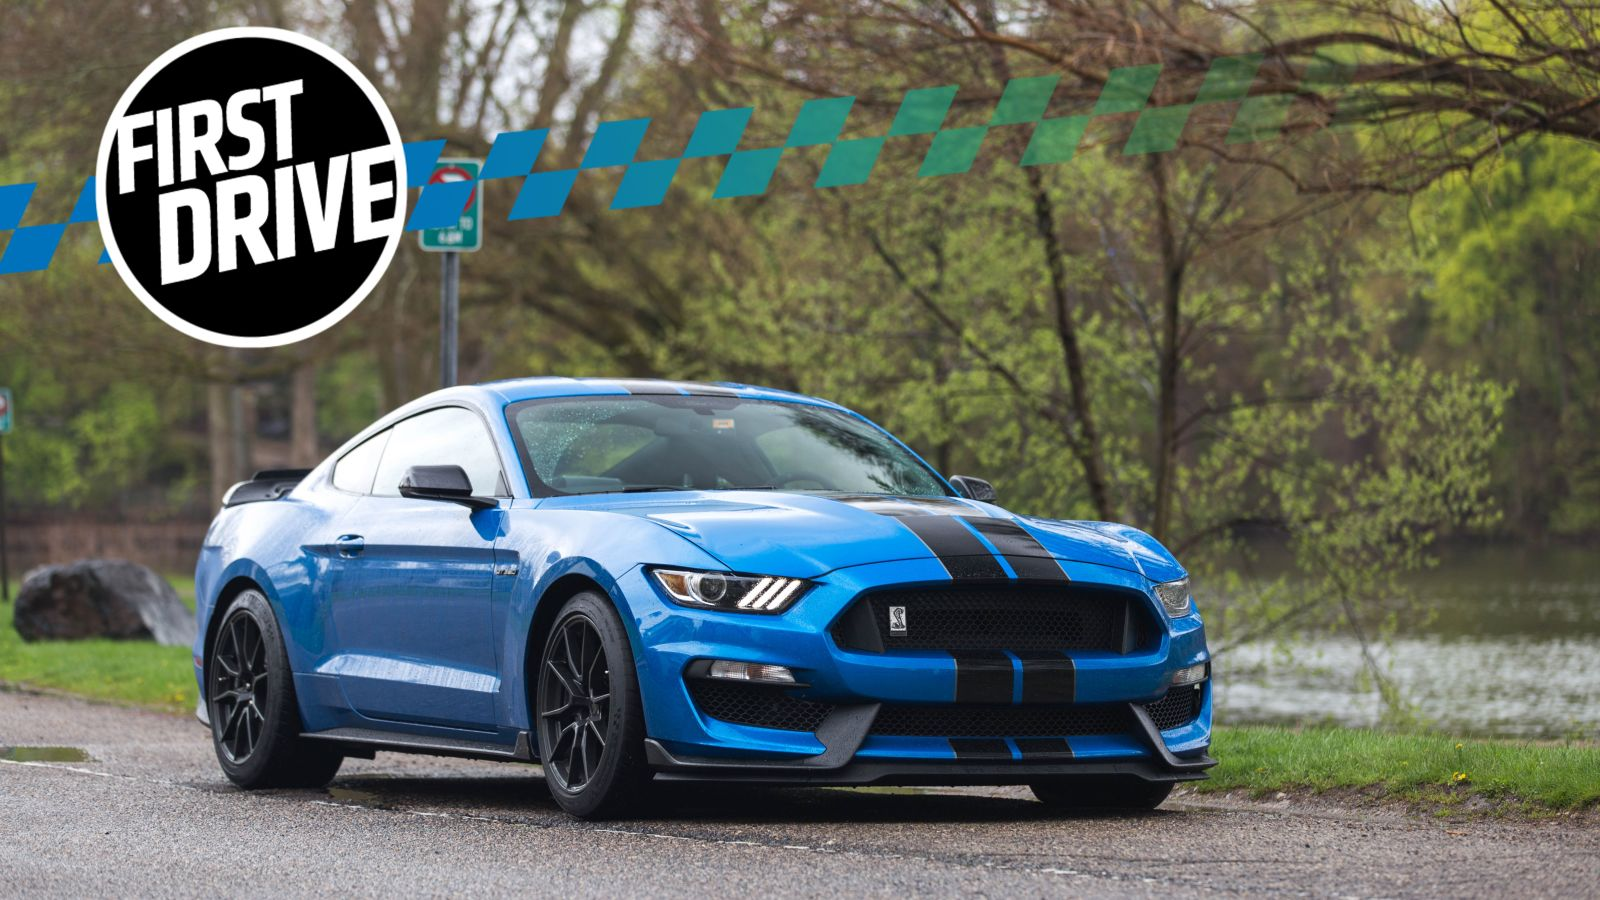 2019-ford-mustang-shelby-gt350-first-drive-jalopnik.jpg